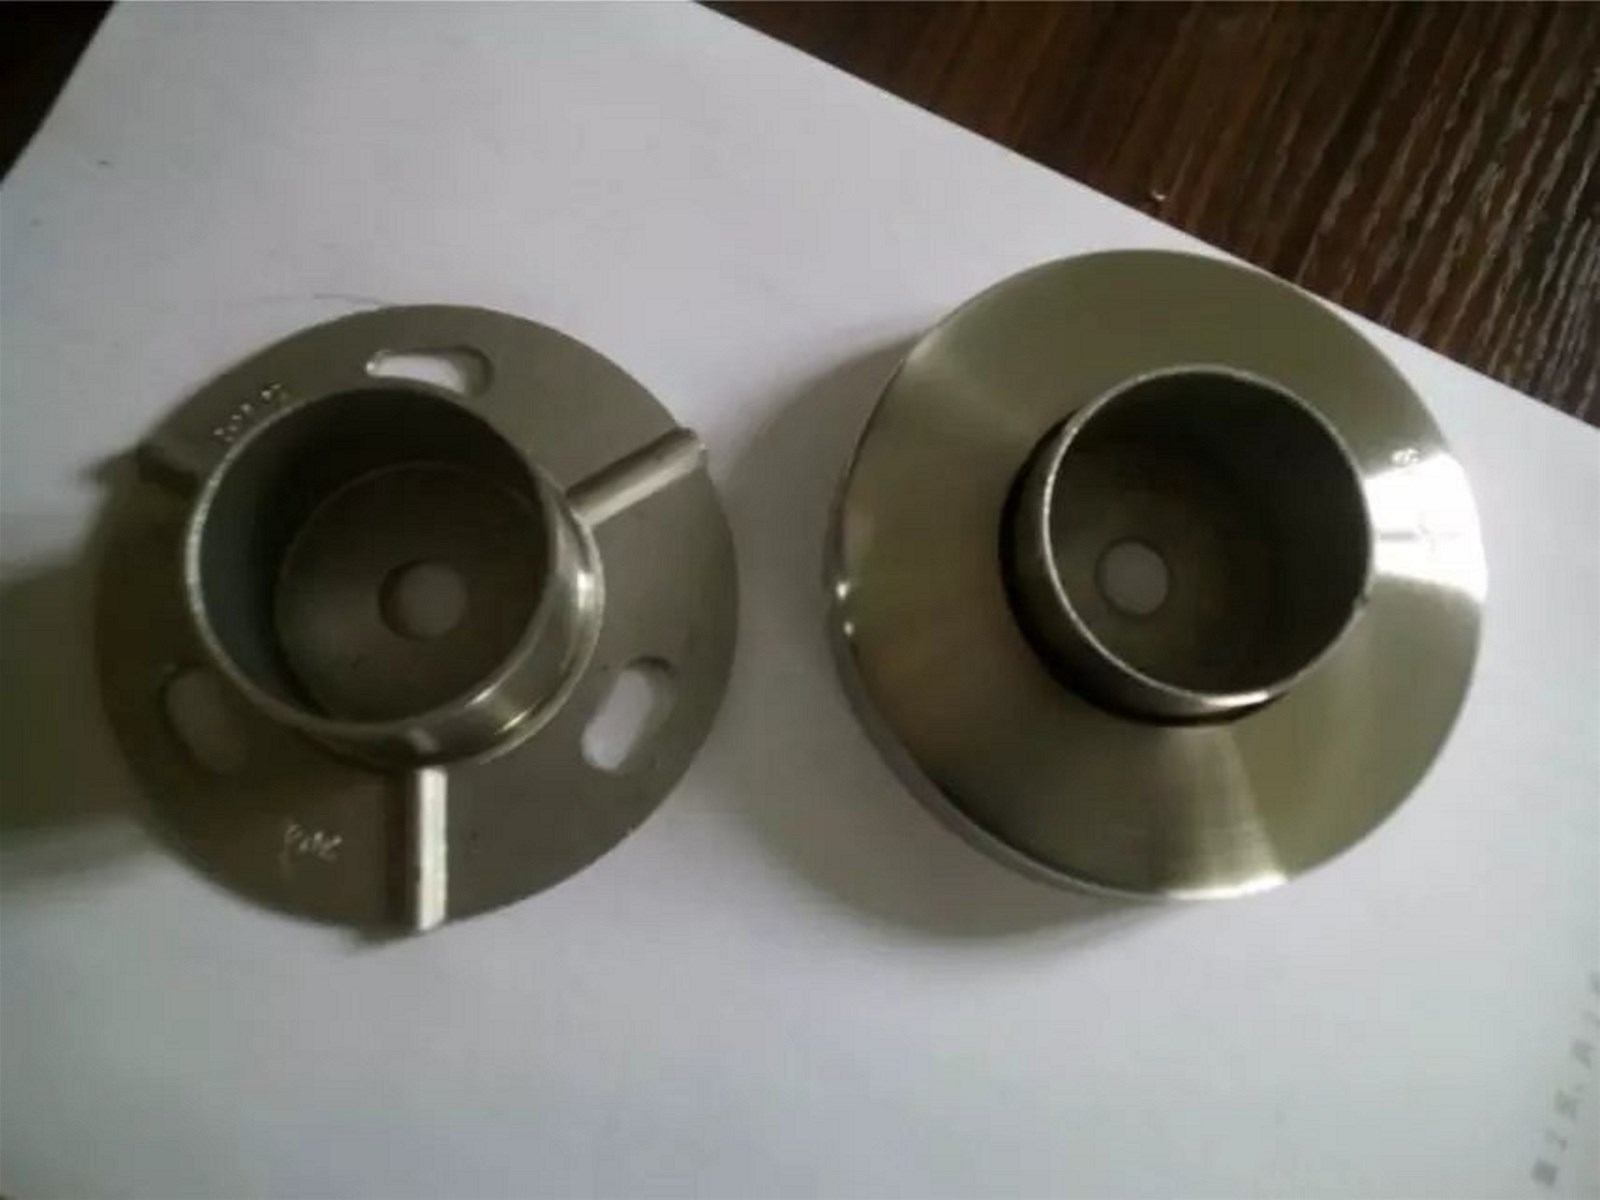 Hardware FittingFlooring Handrail AccessoriesStainless Steel Flange Accessory Covers